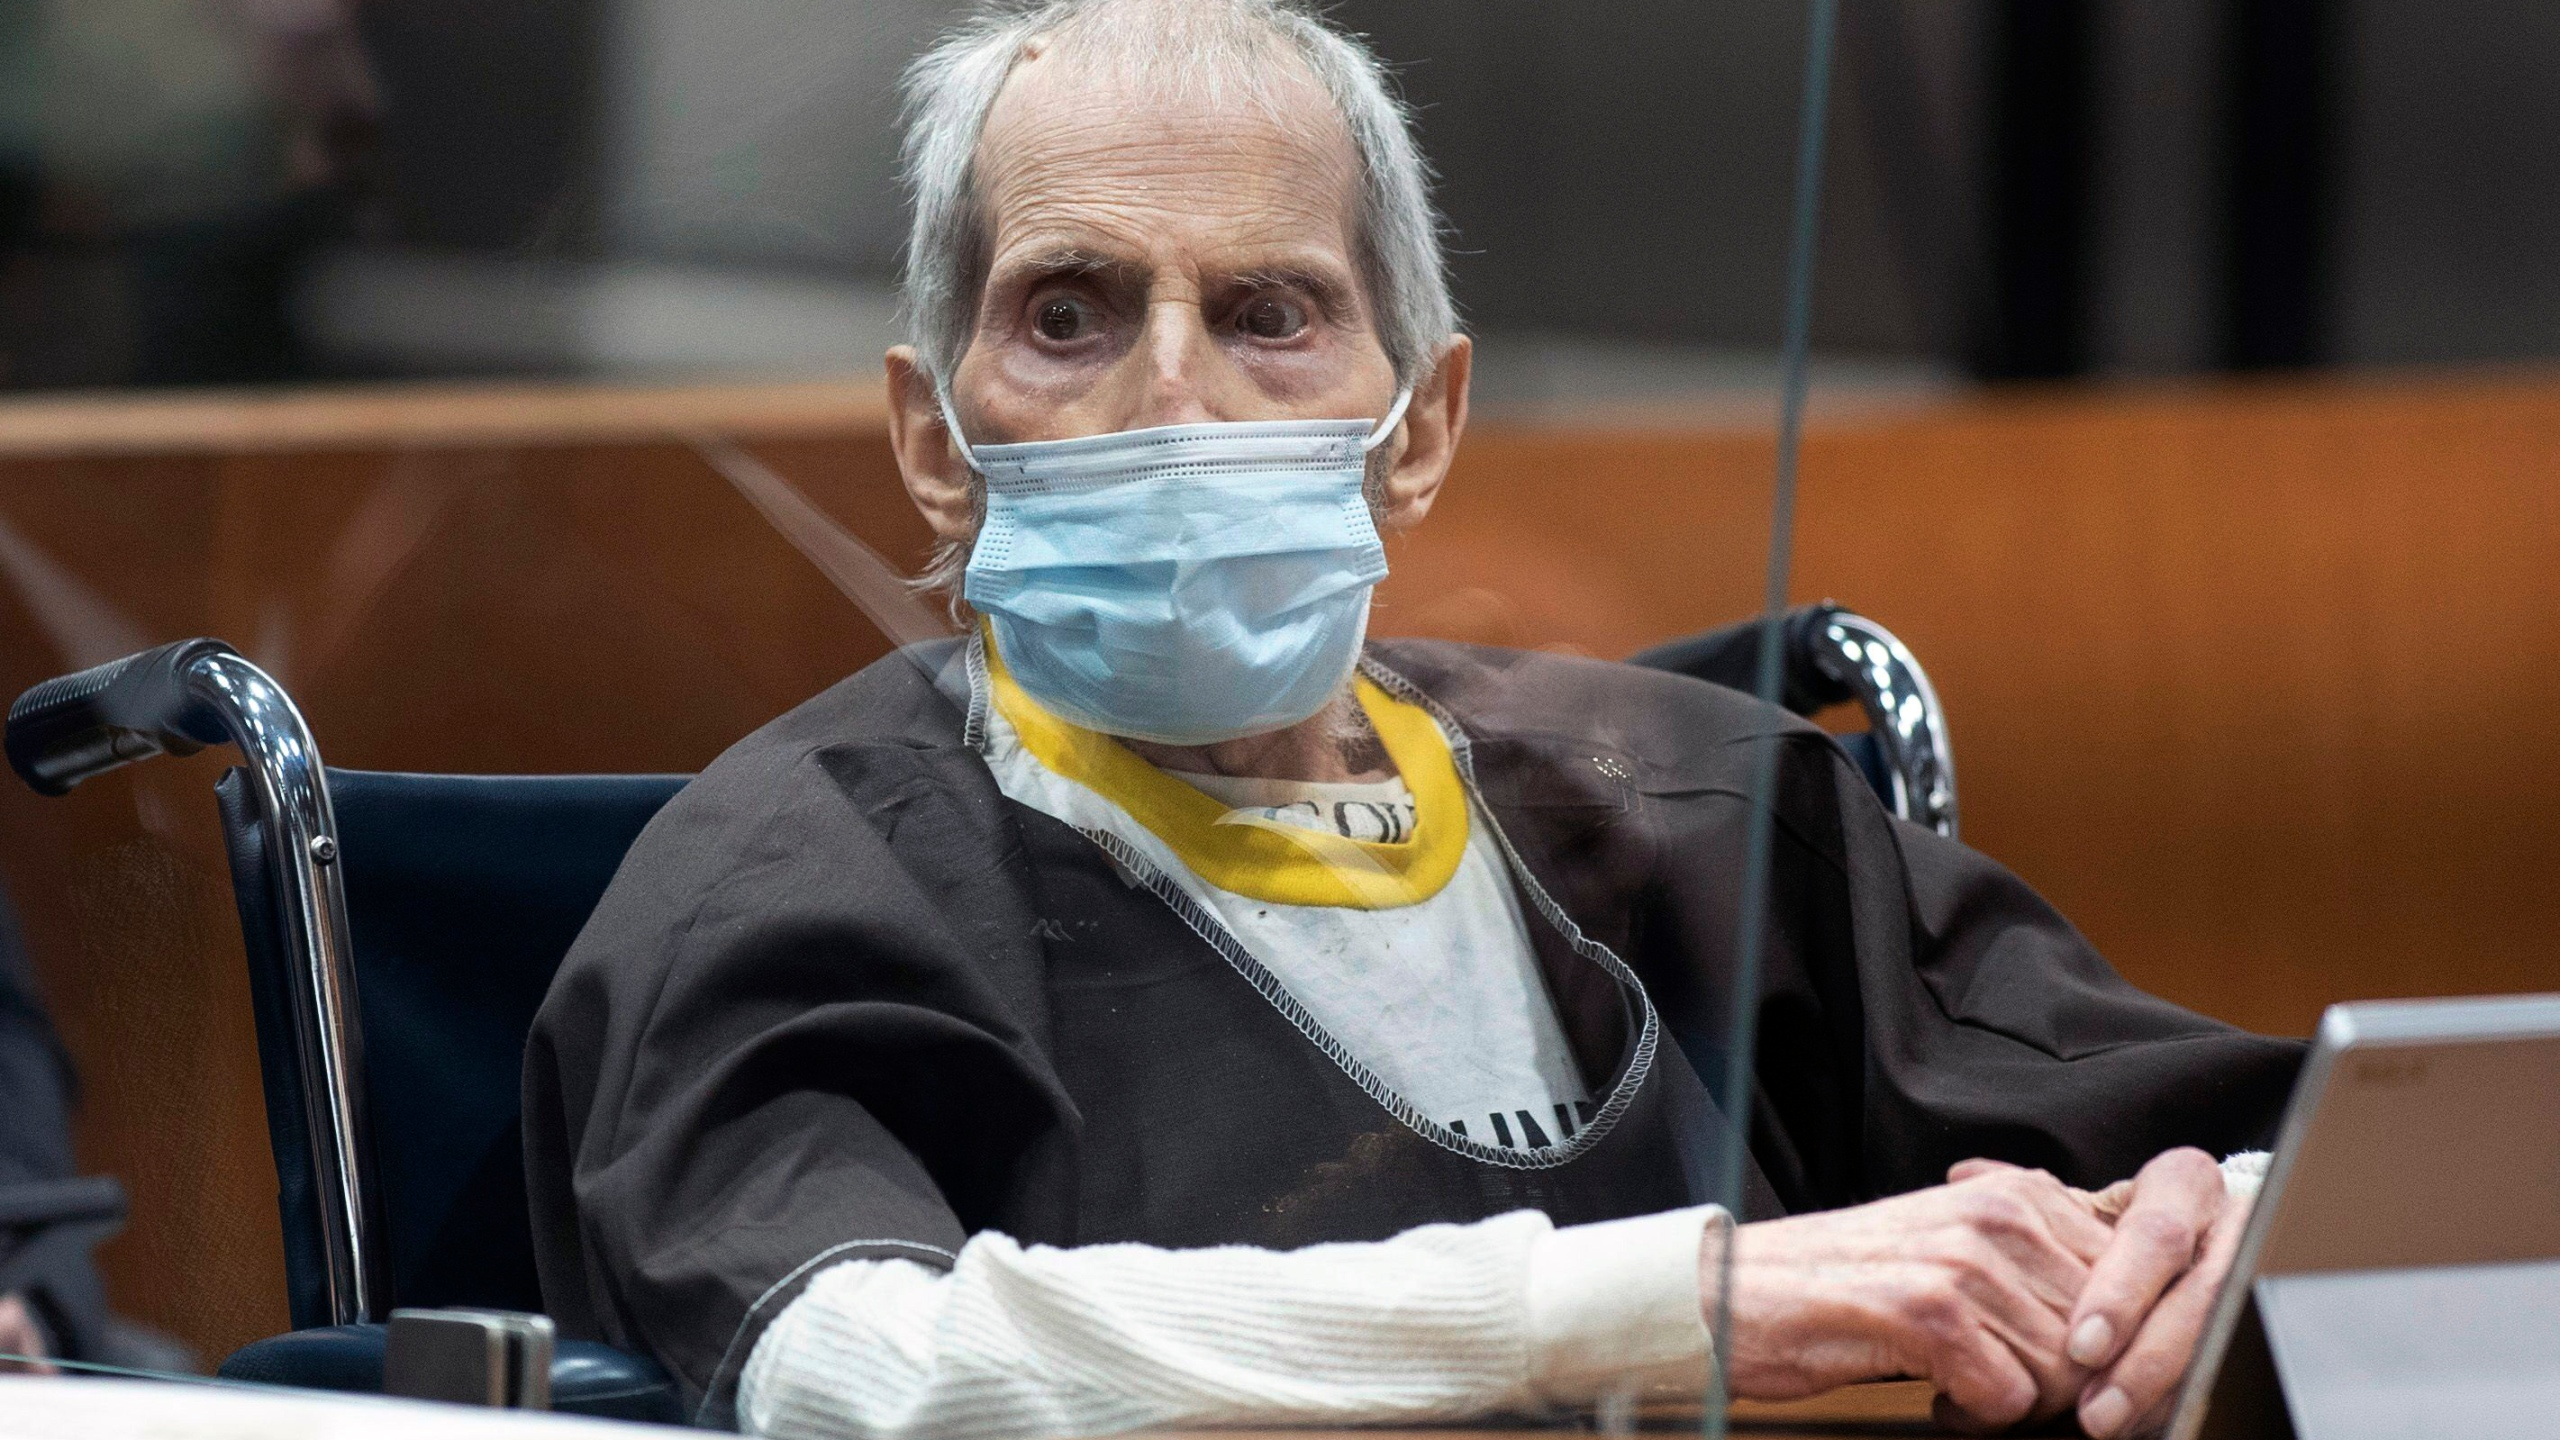 New York real estate scion Robert Durst, 78, sits in the courtroom as he is sentenced to life in prison without chance of parole, Thursday, Oct. 14, 2021 at the Airport Courthouse in Los Angeles. New York real estate heir Robert Durst was sentenced Thursday to life in prison without chance of parole for the murder of his best friend more that two decades ago. (Myung J. Chung/Los Angeles Times via AP, Pool)